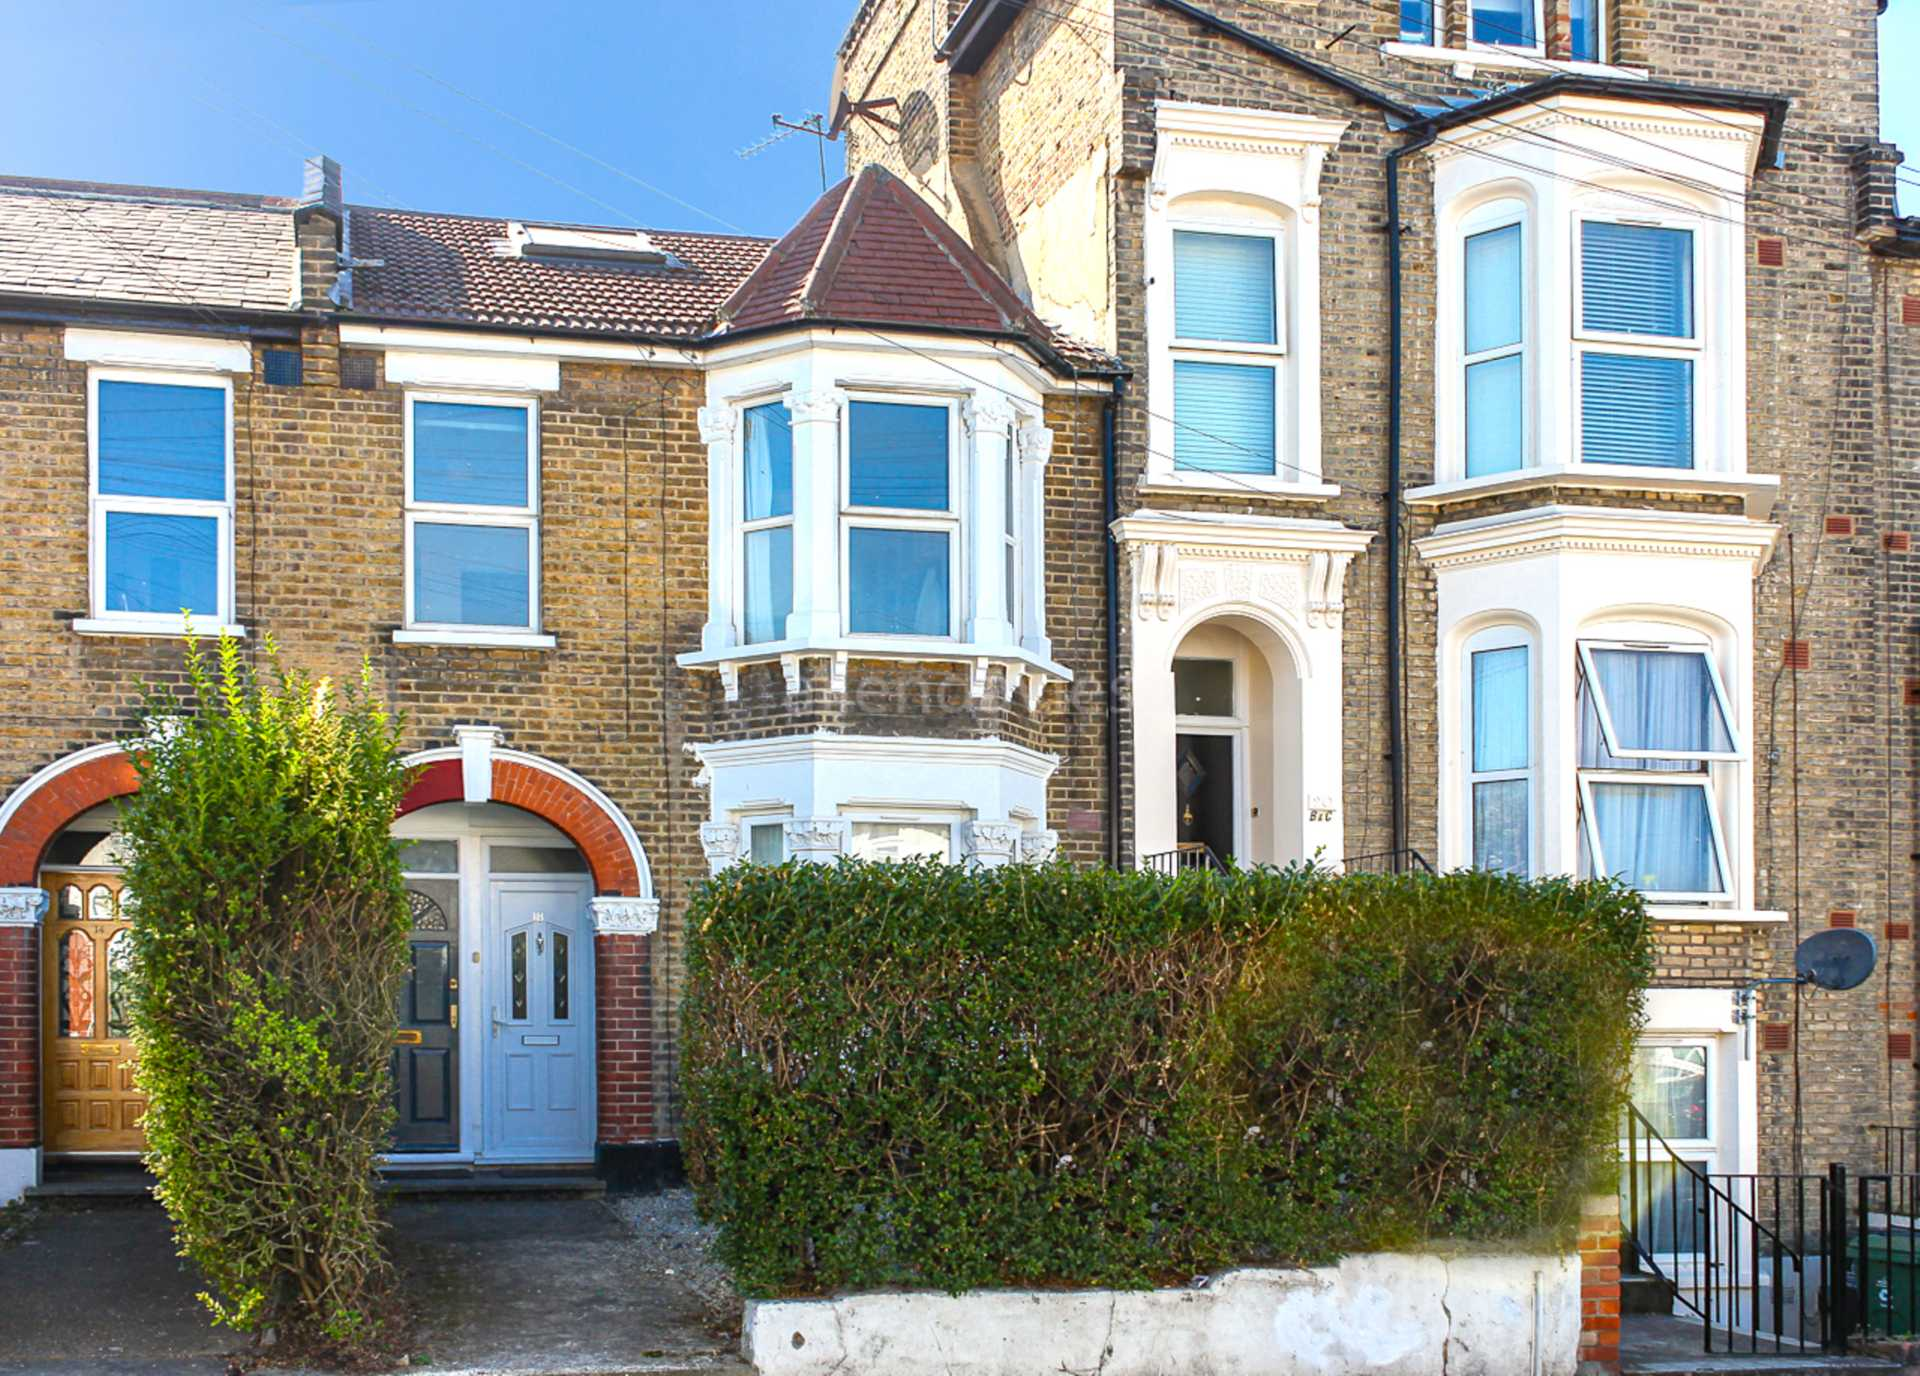 Goldsmith Road, Leyton, Image 4